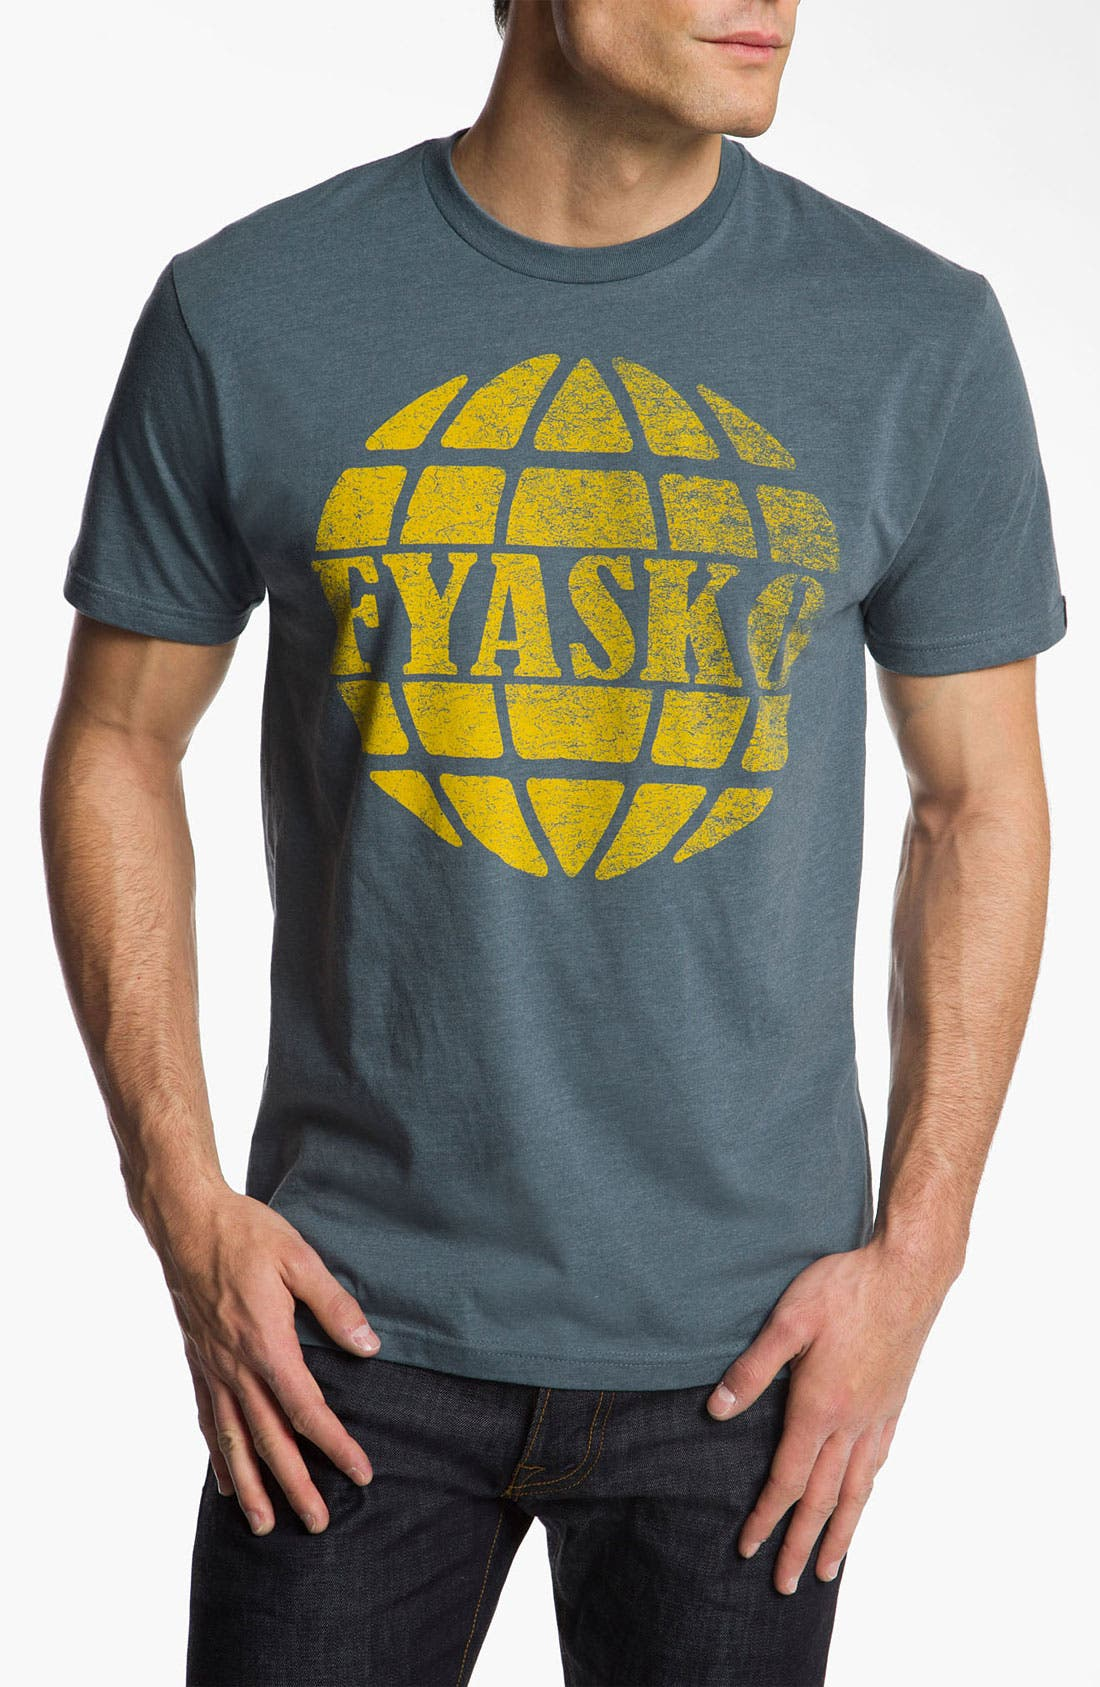 Alternate Image 1 Selected - Fyasko 'International' T-Shirt